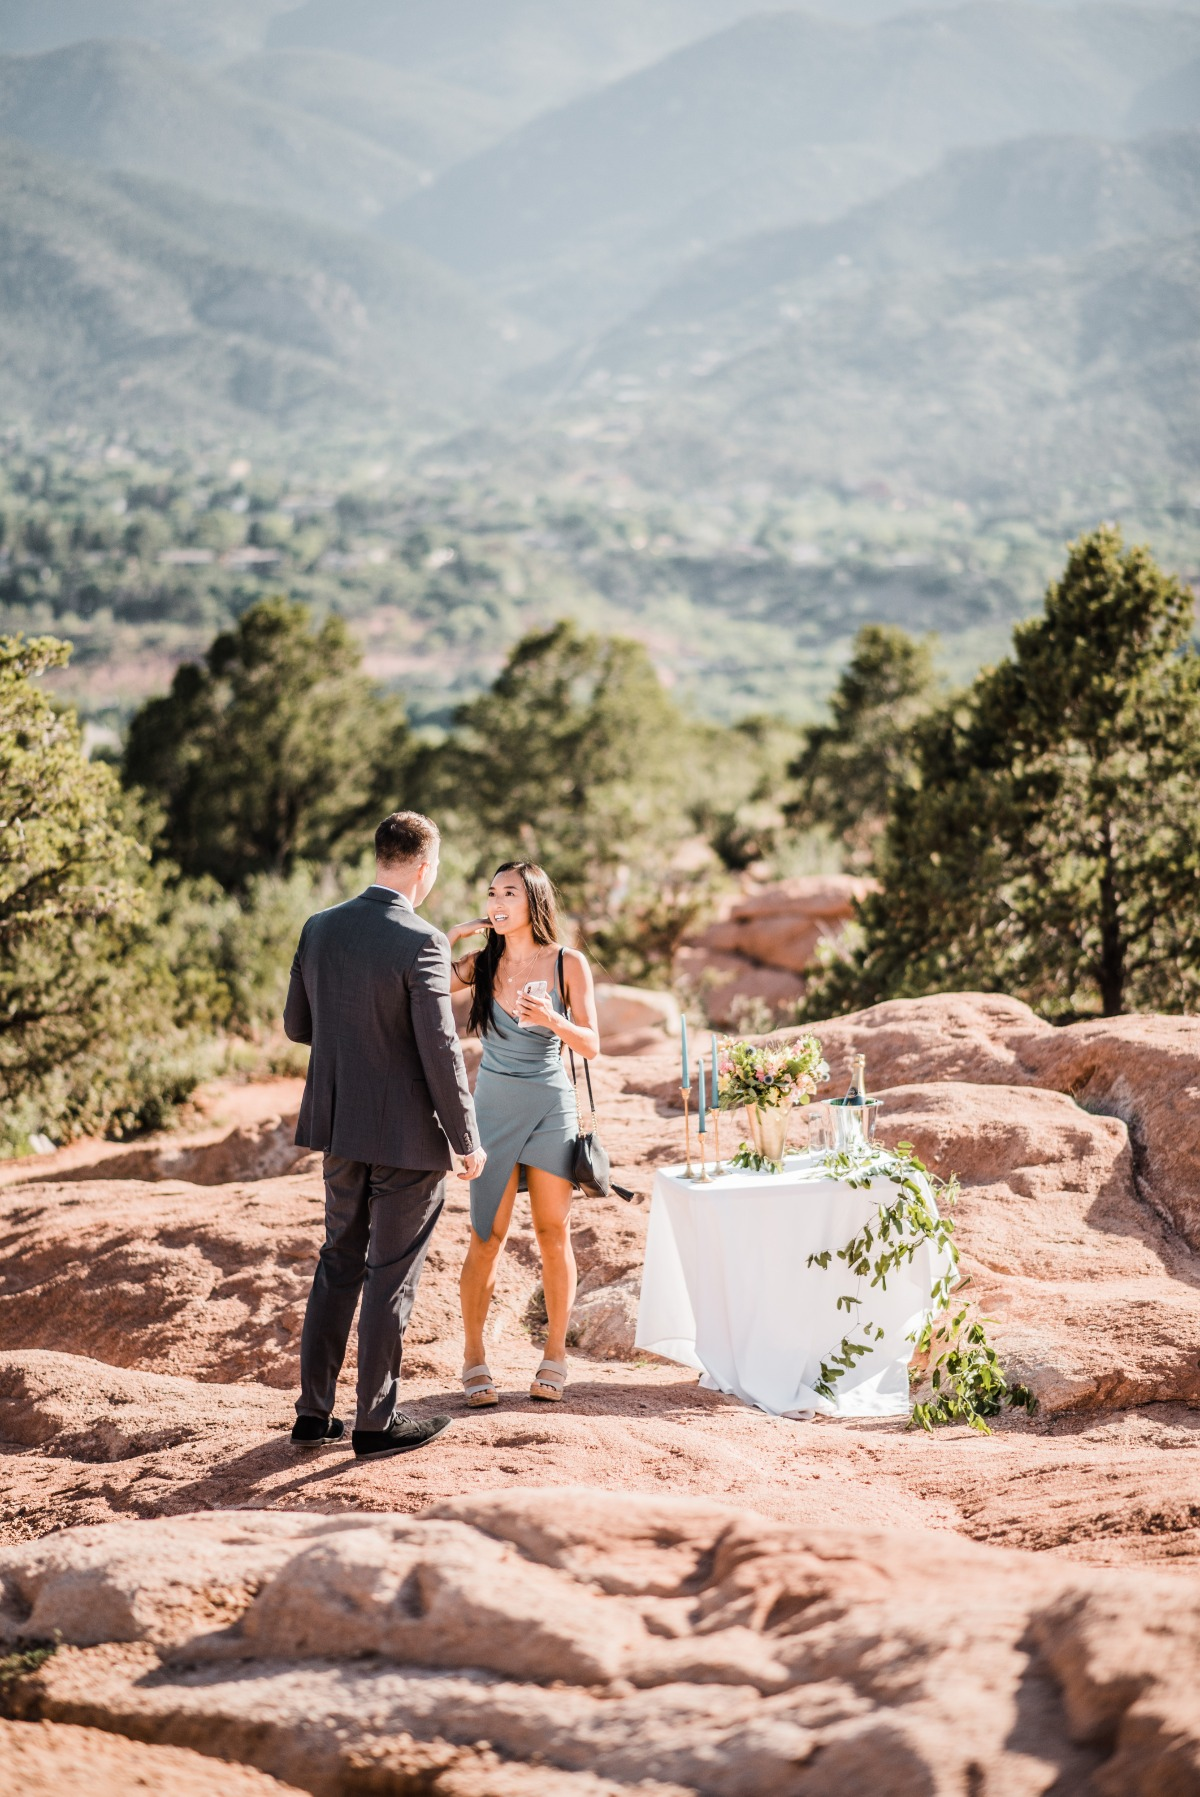 How to Have a Surprise Mountain Proposal in Colorado